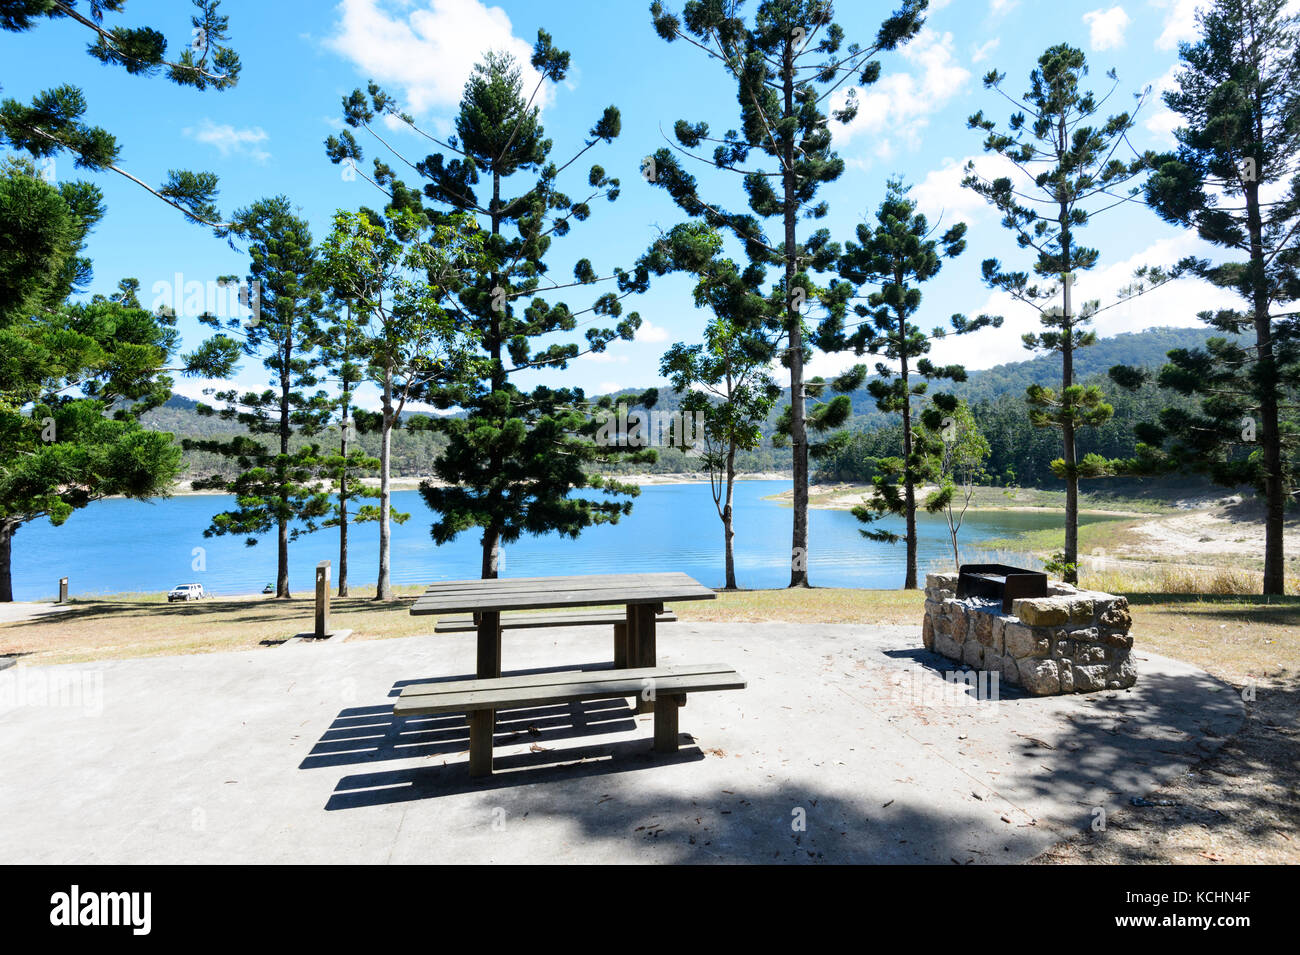 Tinaroo Falls Dam is also used as a picnic and recreation area, Atherton Tablelands, Far North Queensland, Australia - Stock Image